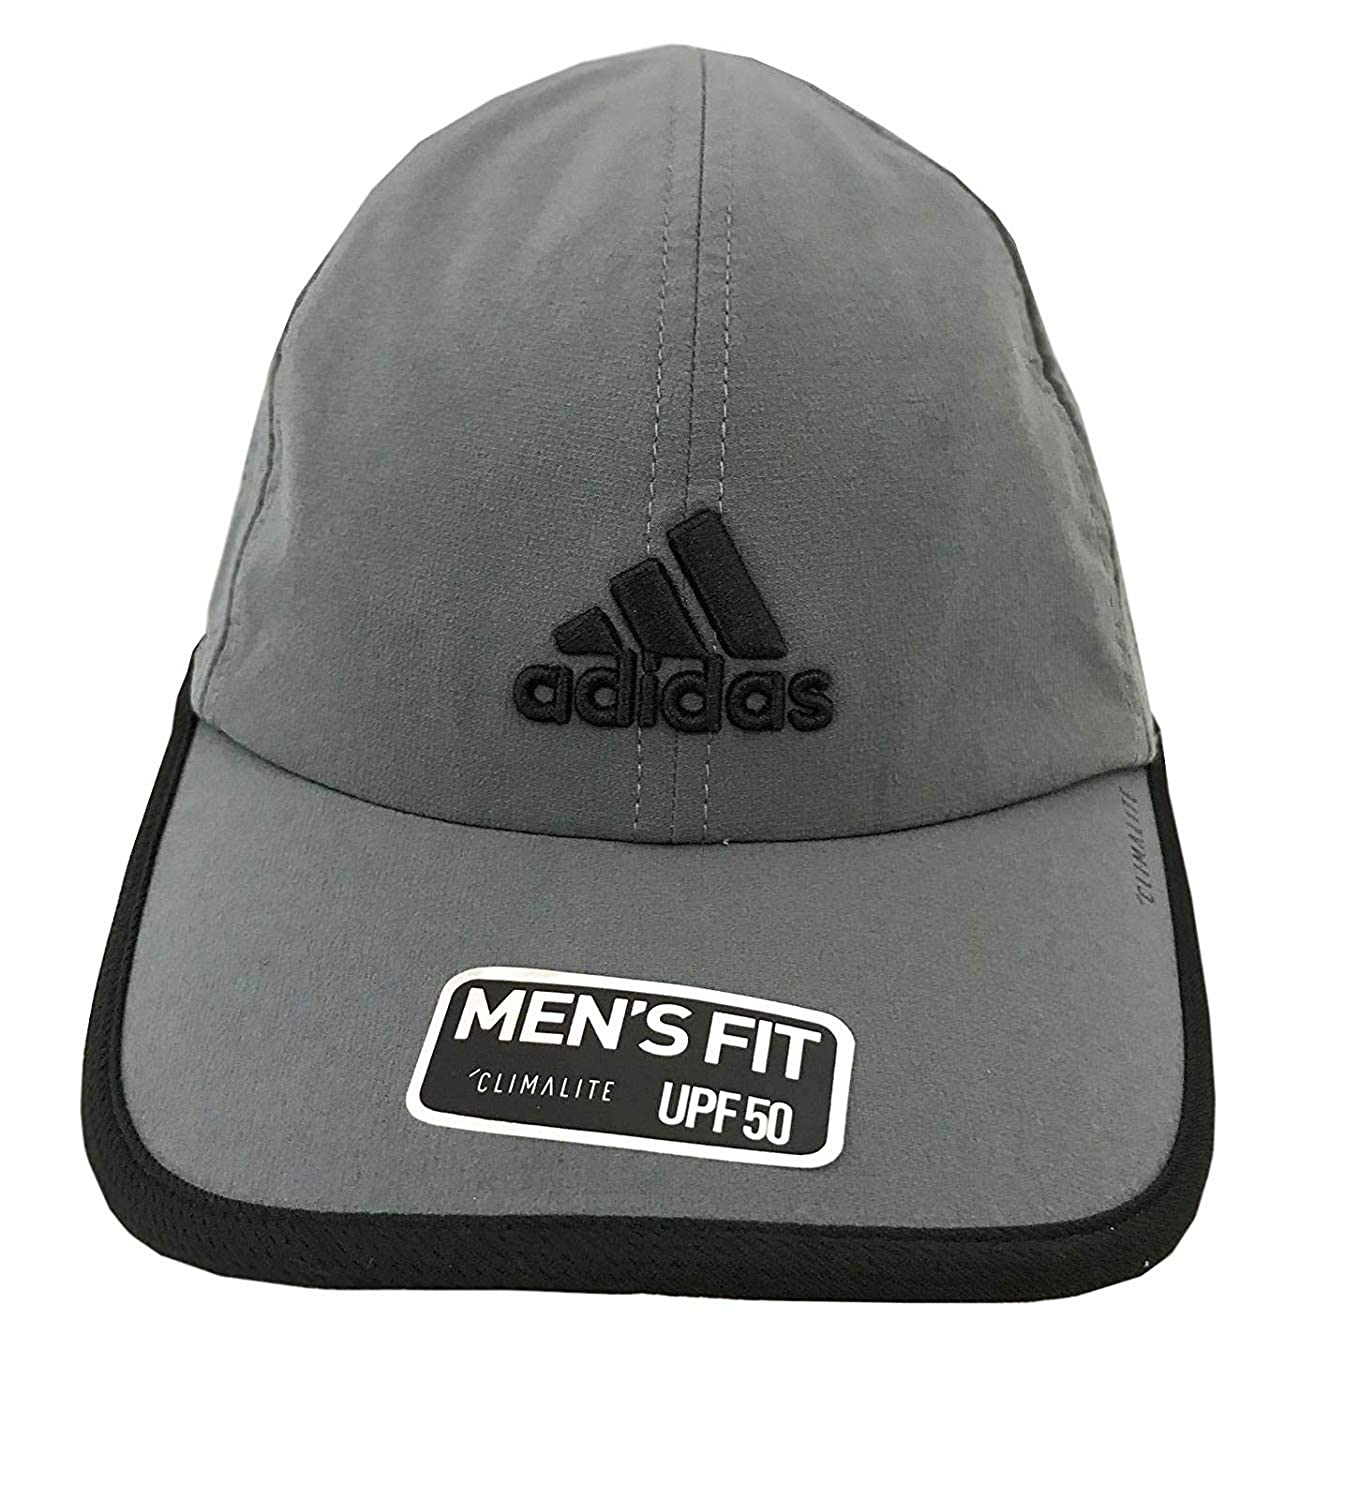 35f8242ef4d Amazon.com  adidas Men s Fit Climalite UPF 50 Cap Hat (Black Grey)  Sports    Outdoors